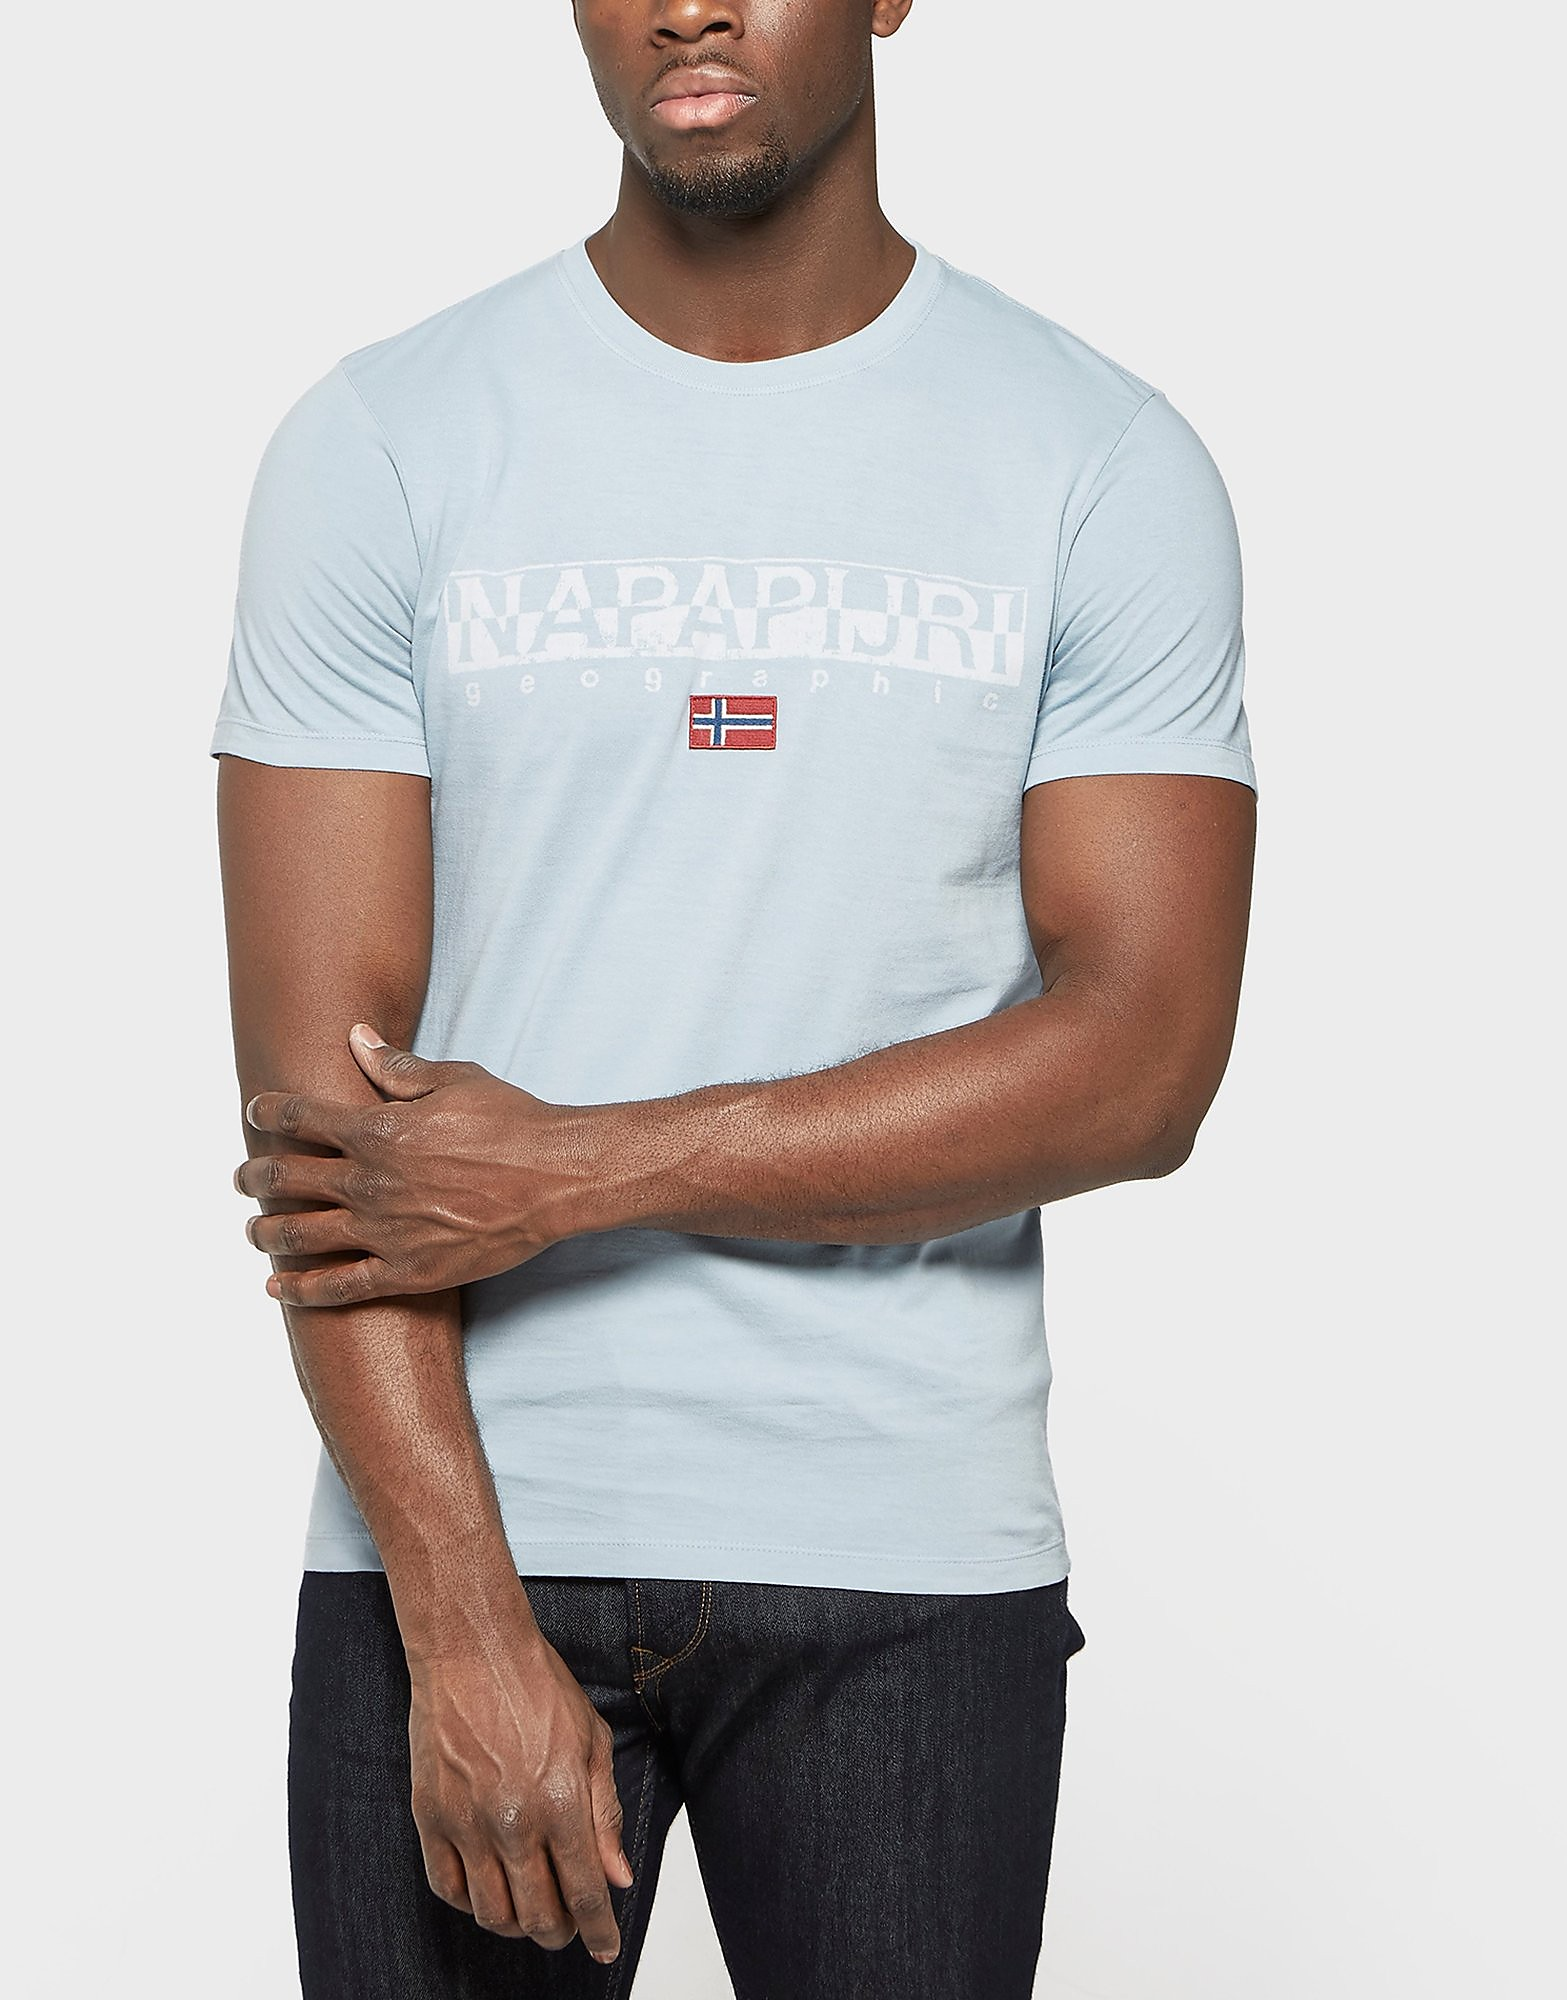 Napapijri Graphic Short Sleeve T-Shirt